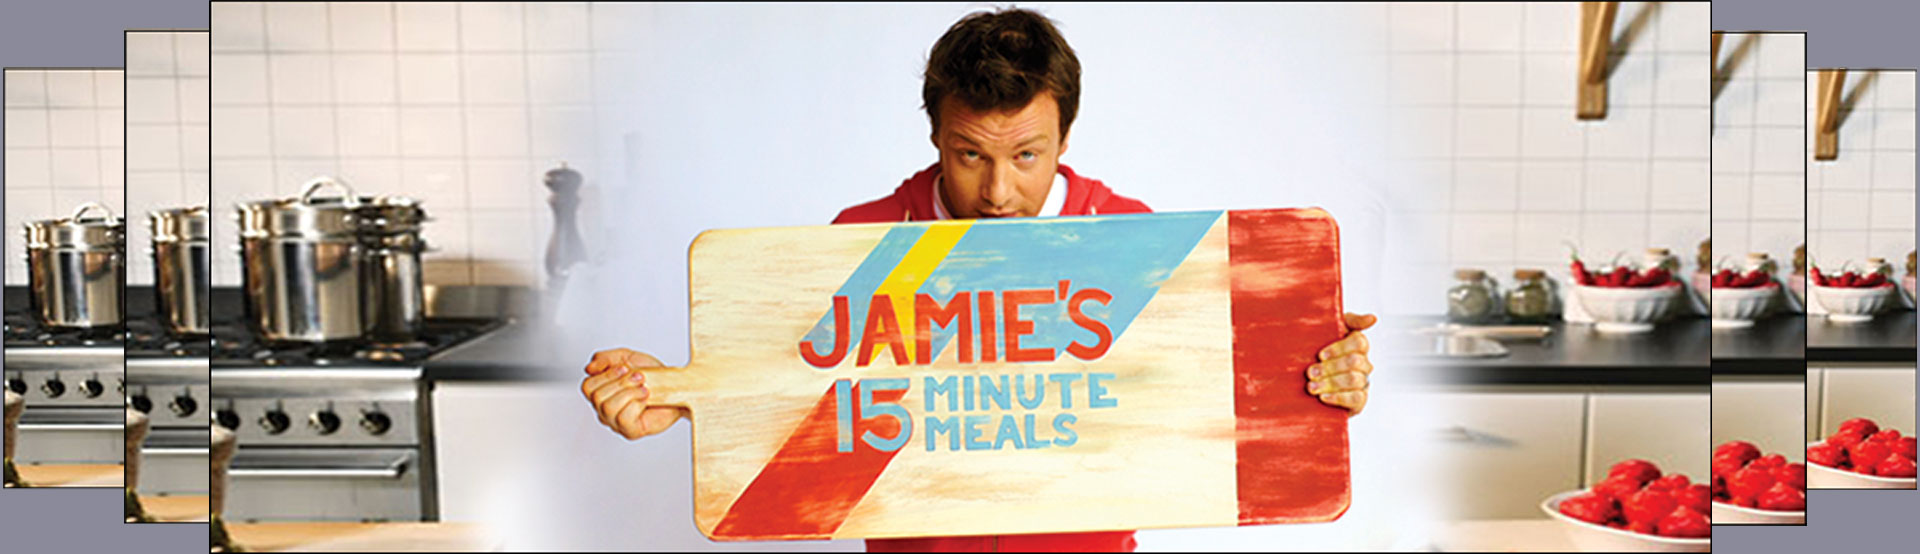 Banner image for Jamie's 15 Minute Meals